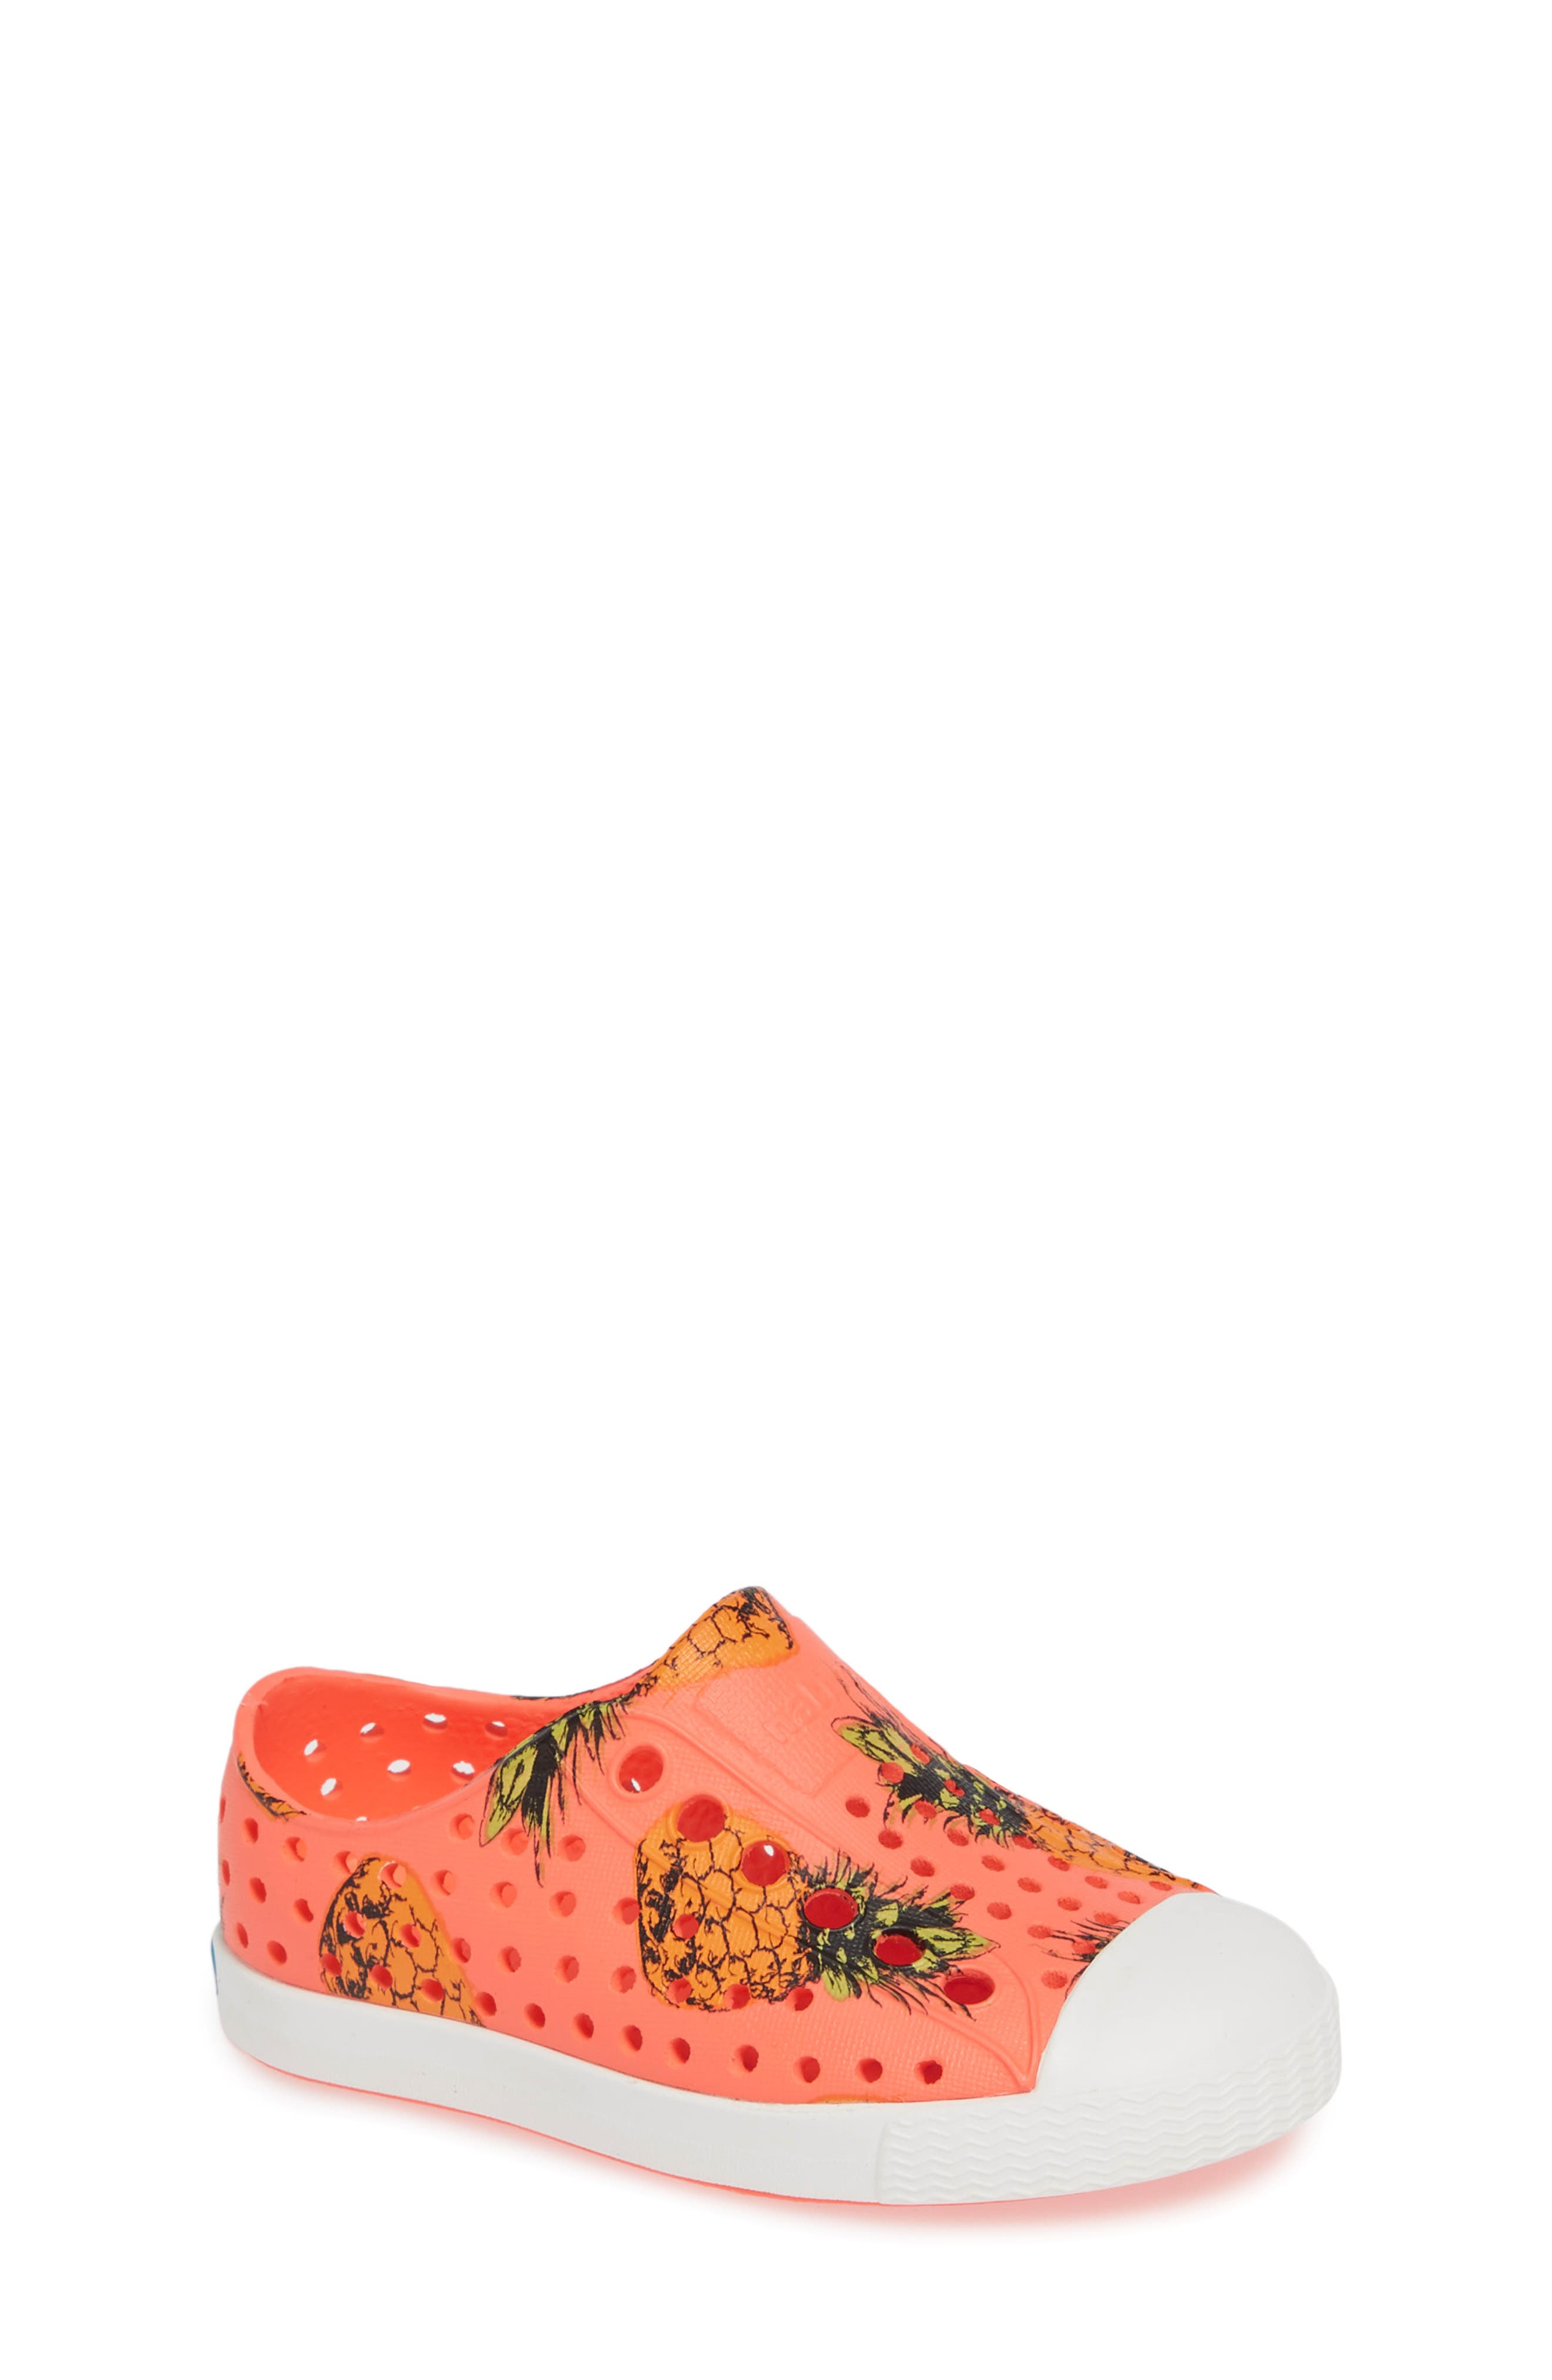 Jefferson Pineapple Print Water Friendly Sneaker,                         Main,                         color, POPSTAR PINK/ WHITE PINEAPPLES